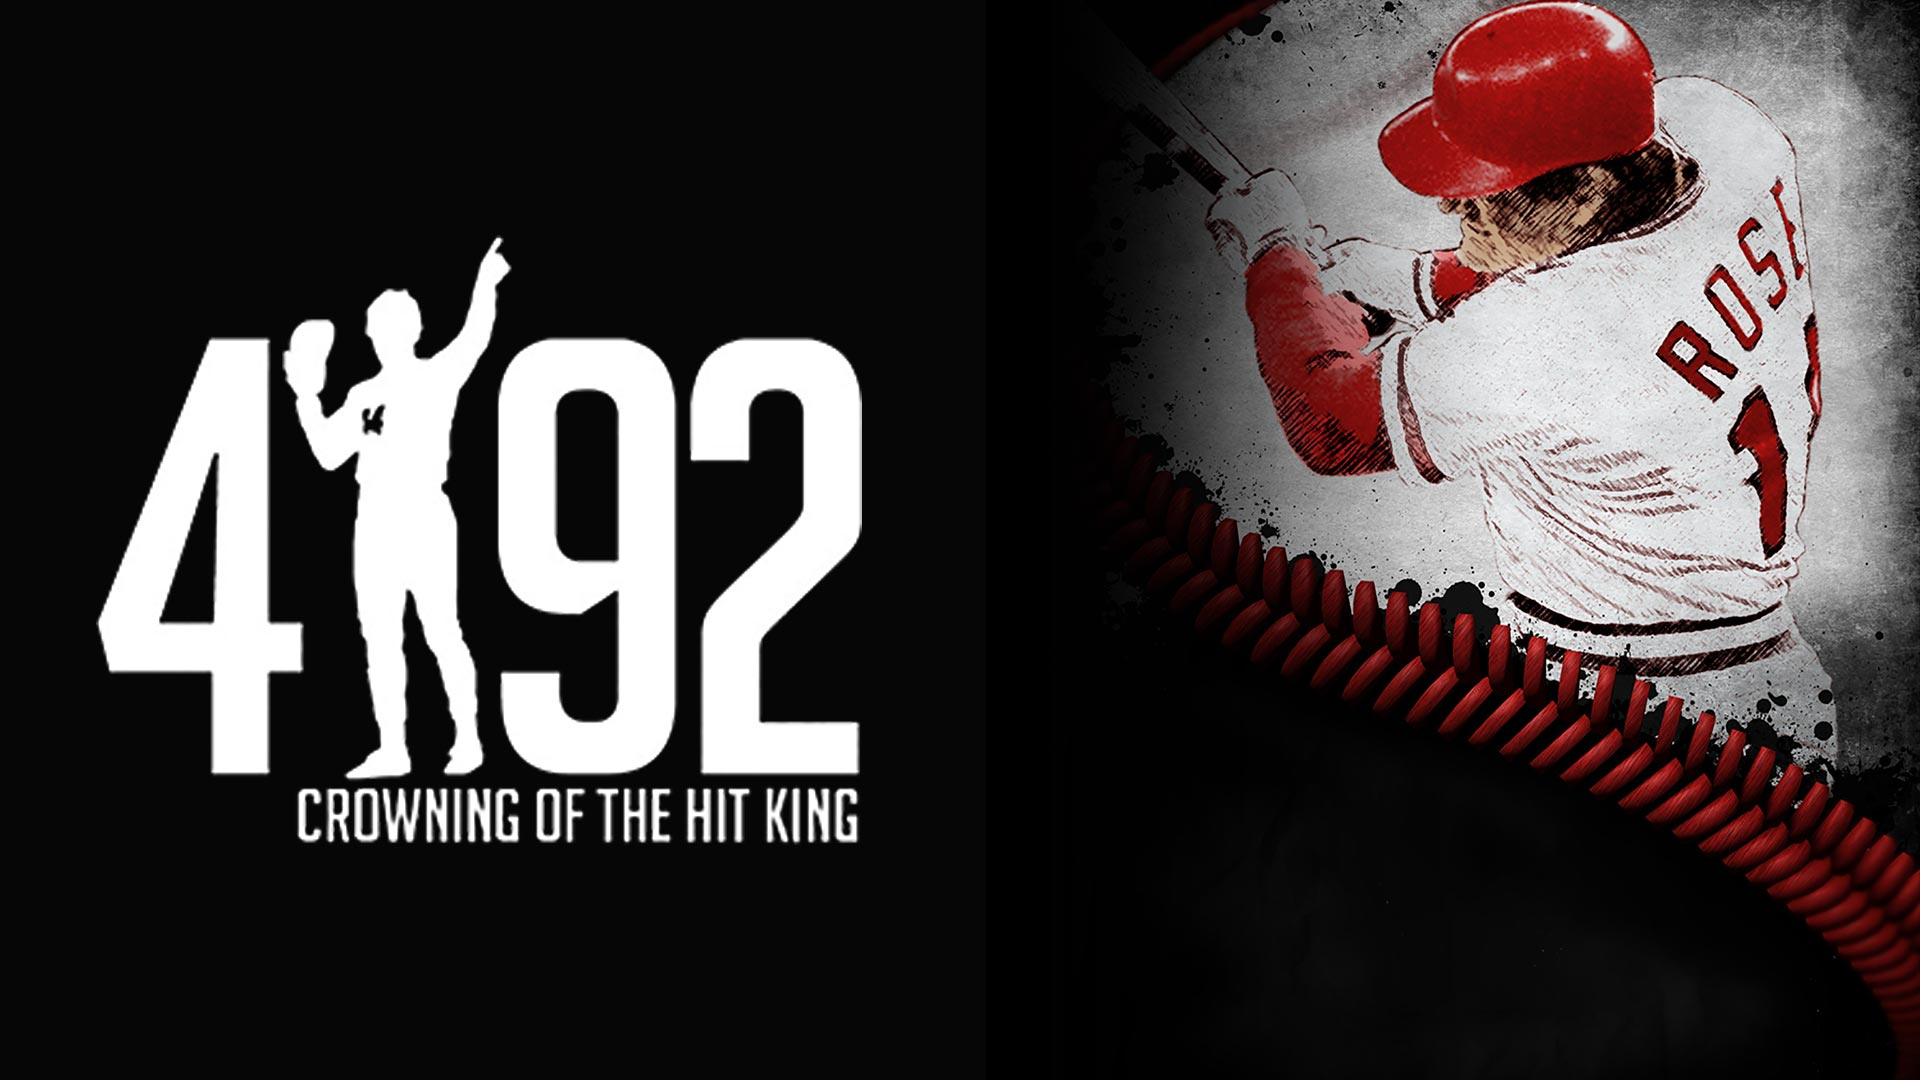 4192: The Crowning of the Hit King